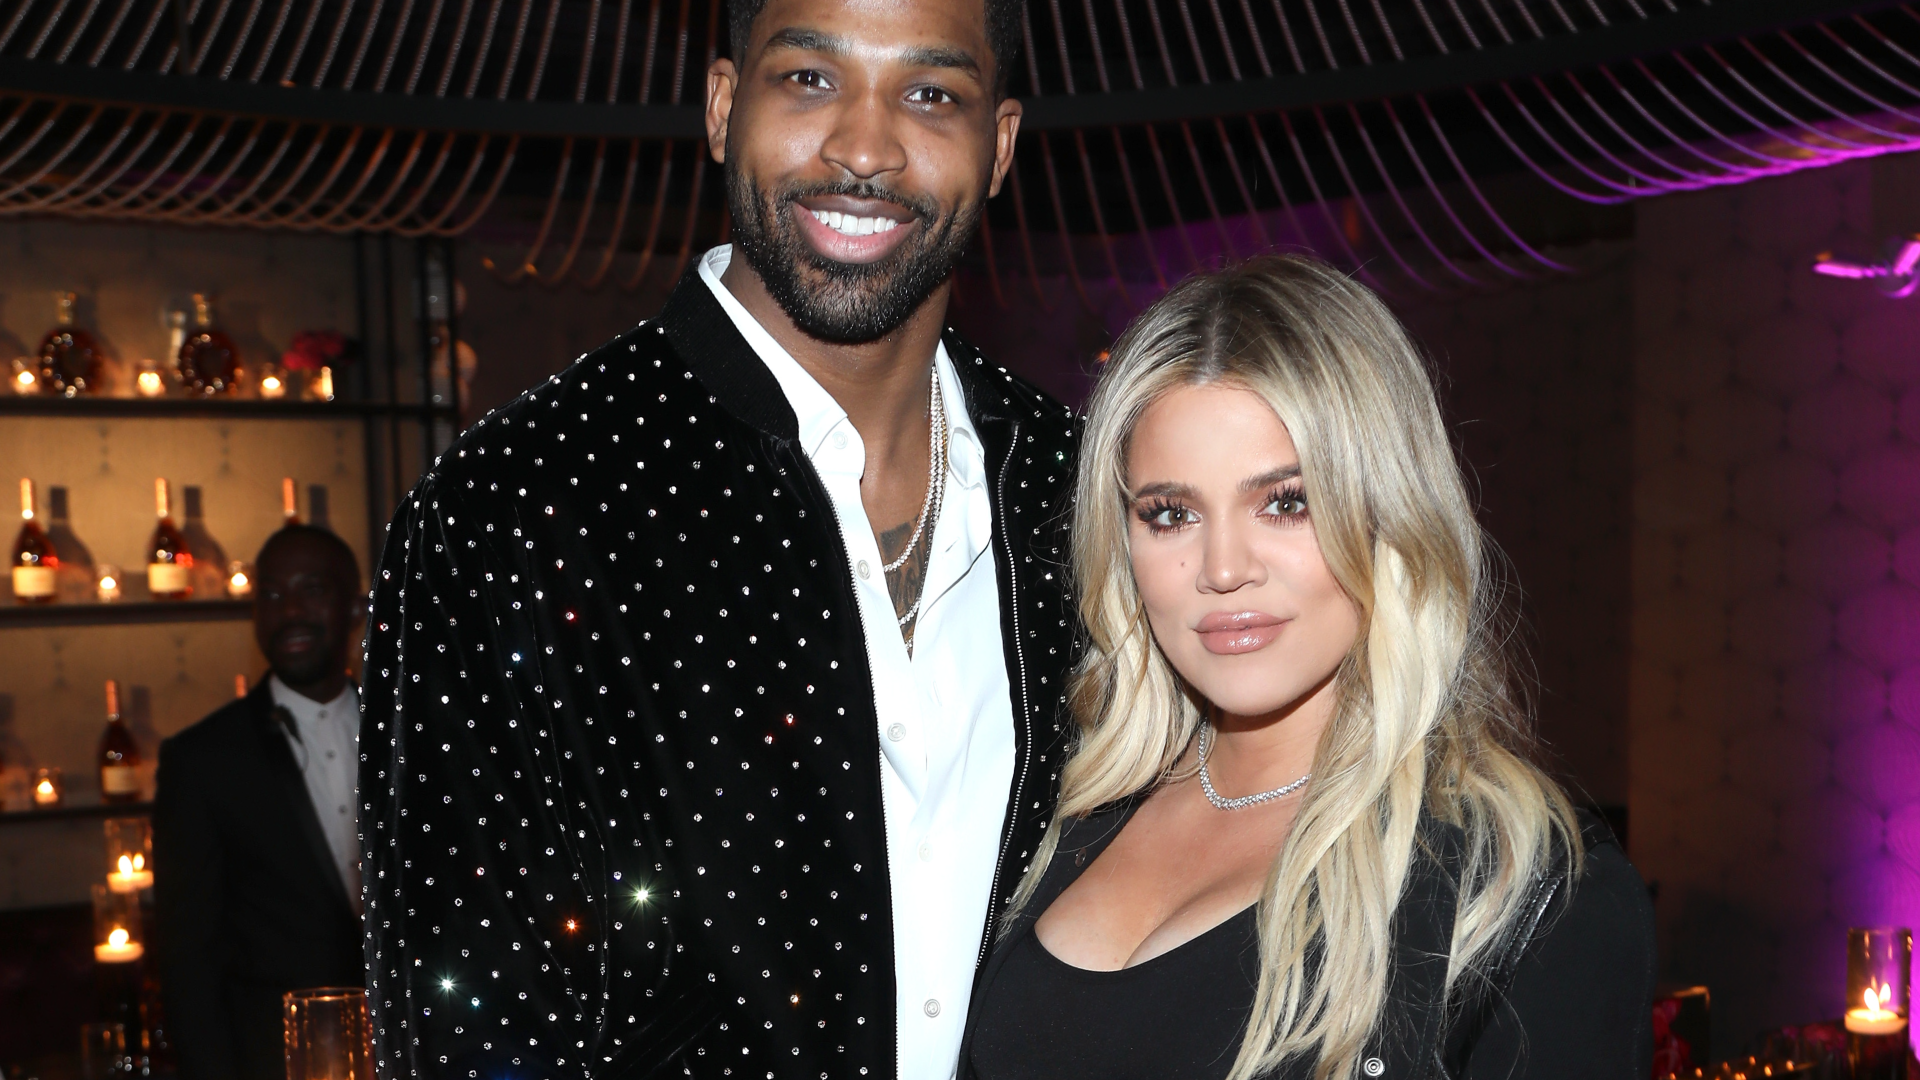 Here's Why Khloe Kardashian And Tristan Thompson Might Not Be Spending Christmas Together